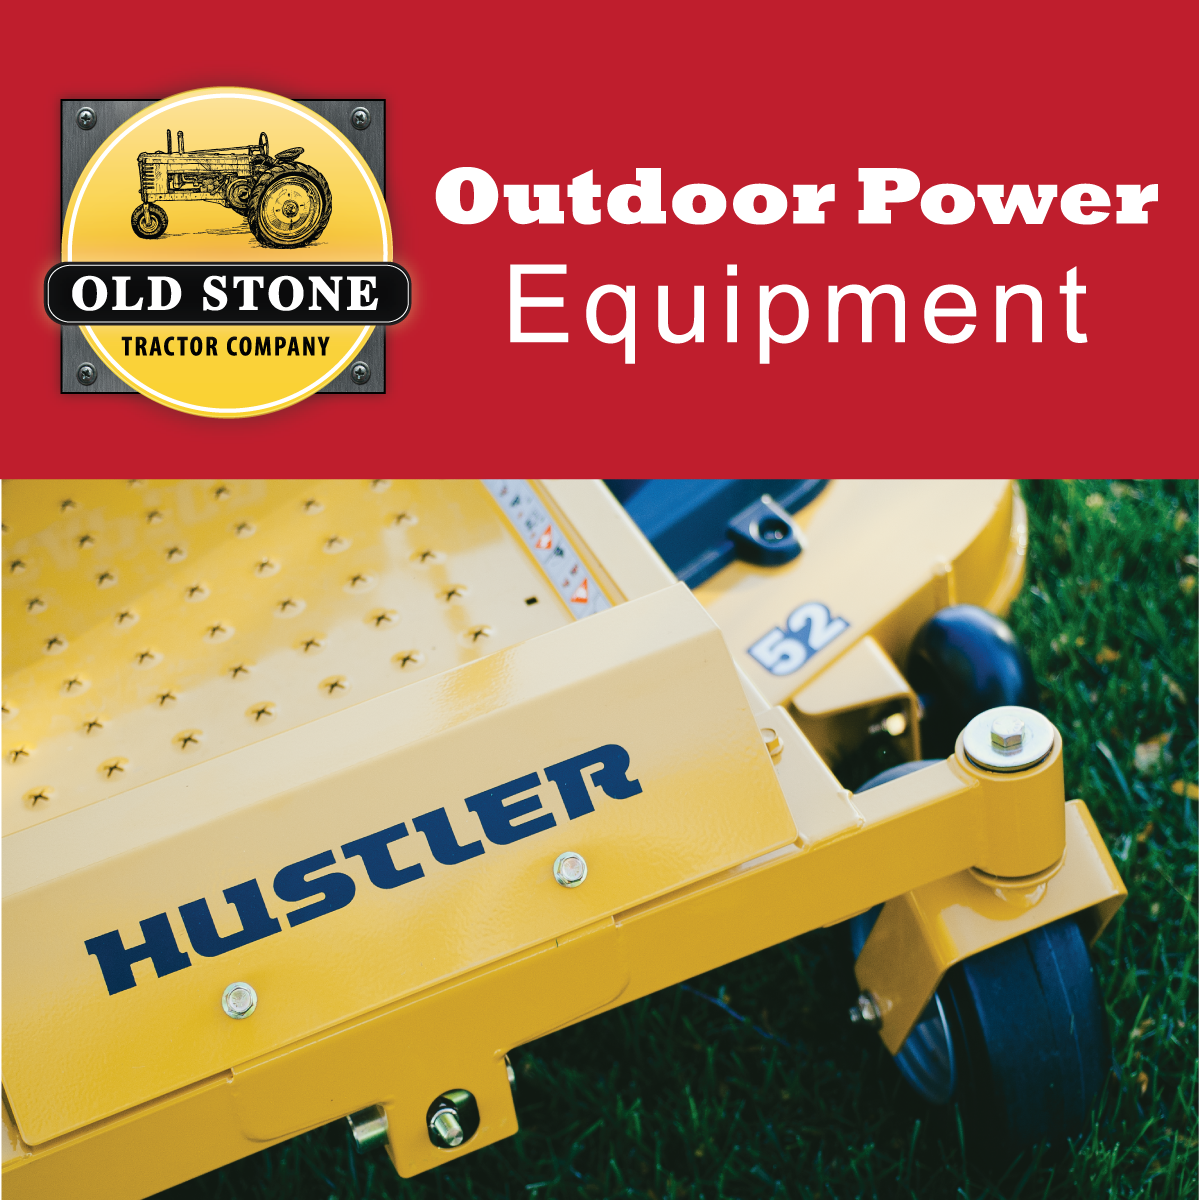 CLICK HERE to go to Outdoor Power Equipment